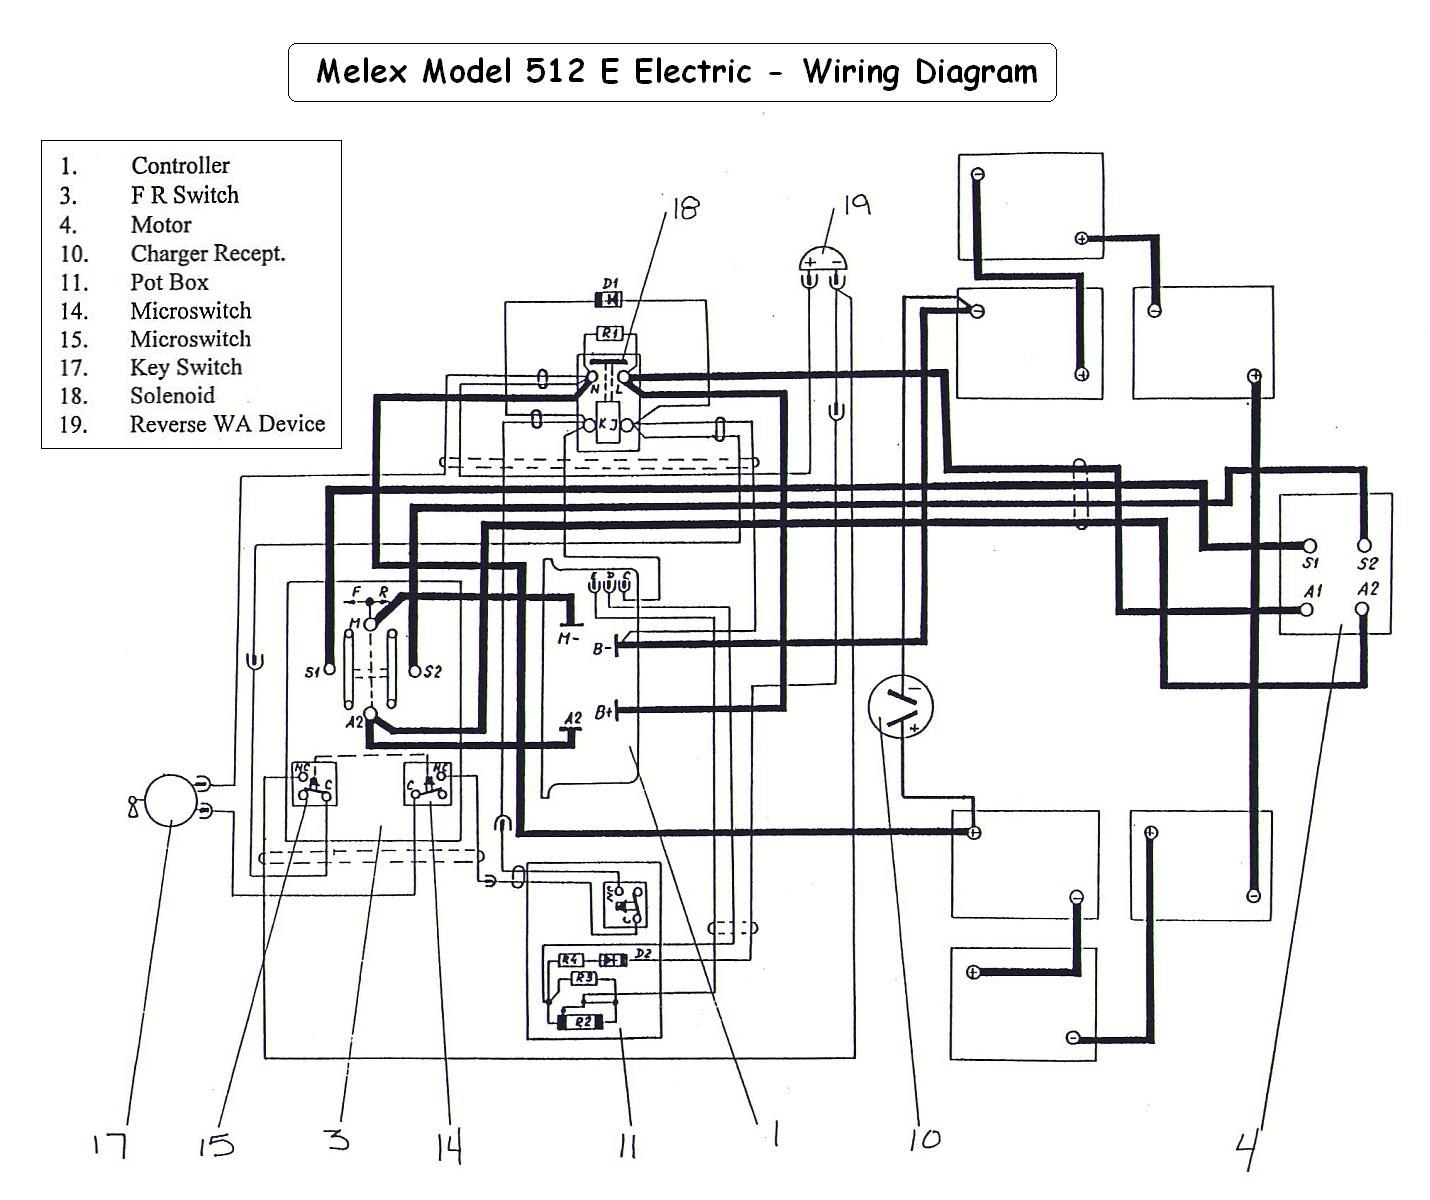 Melex512E_wiring_diagram vintagegolfcartparts com golf cart battery charger wiring diagram at pacquiaovsvargaslive.co